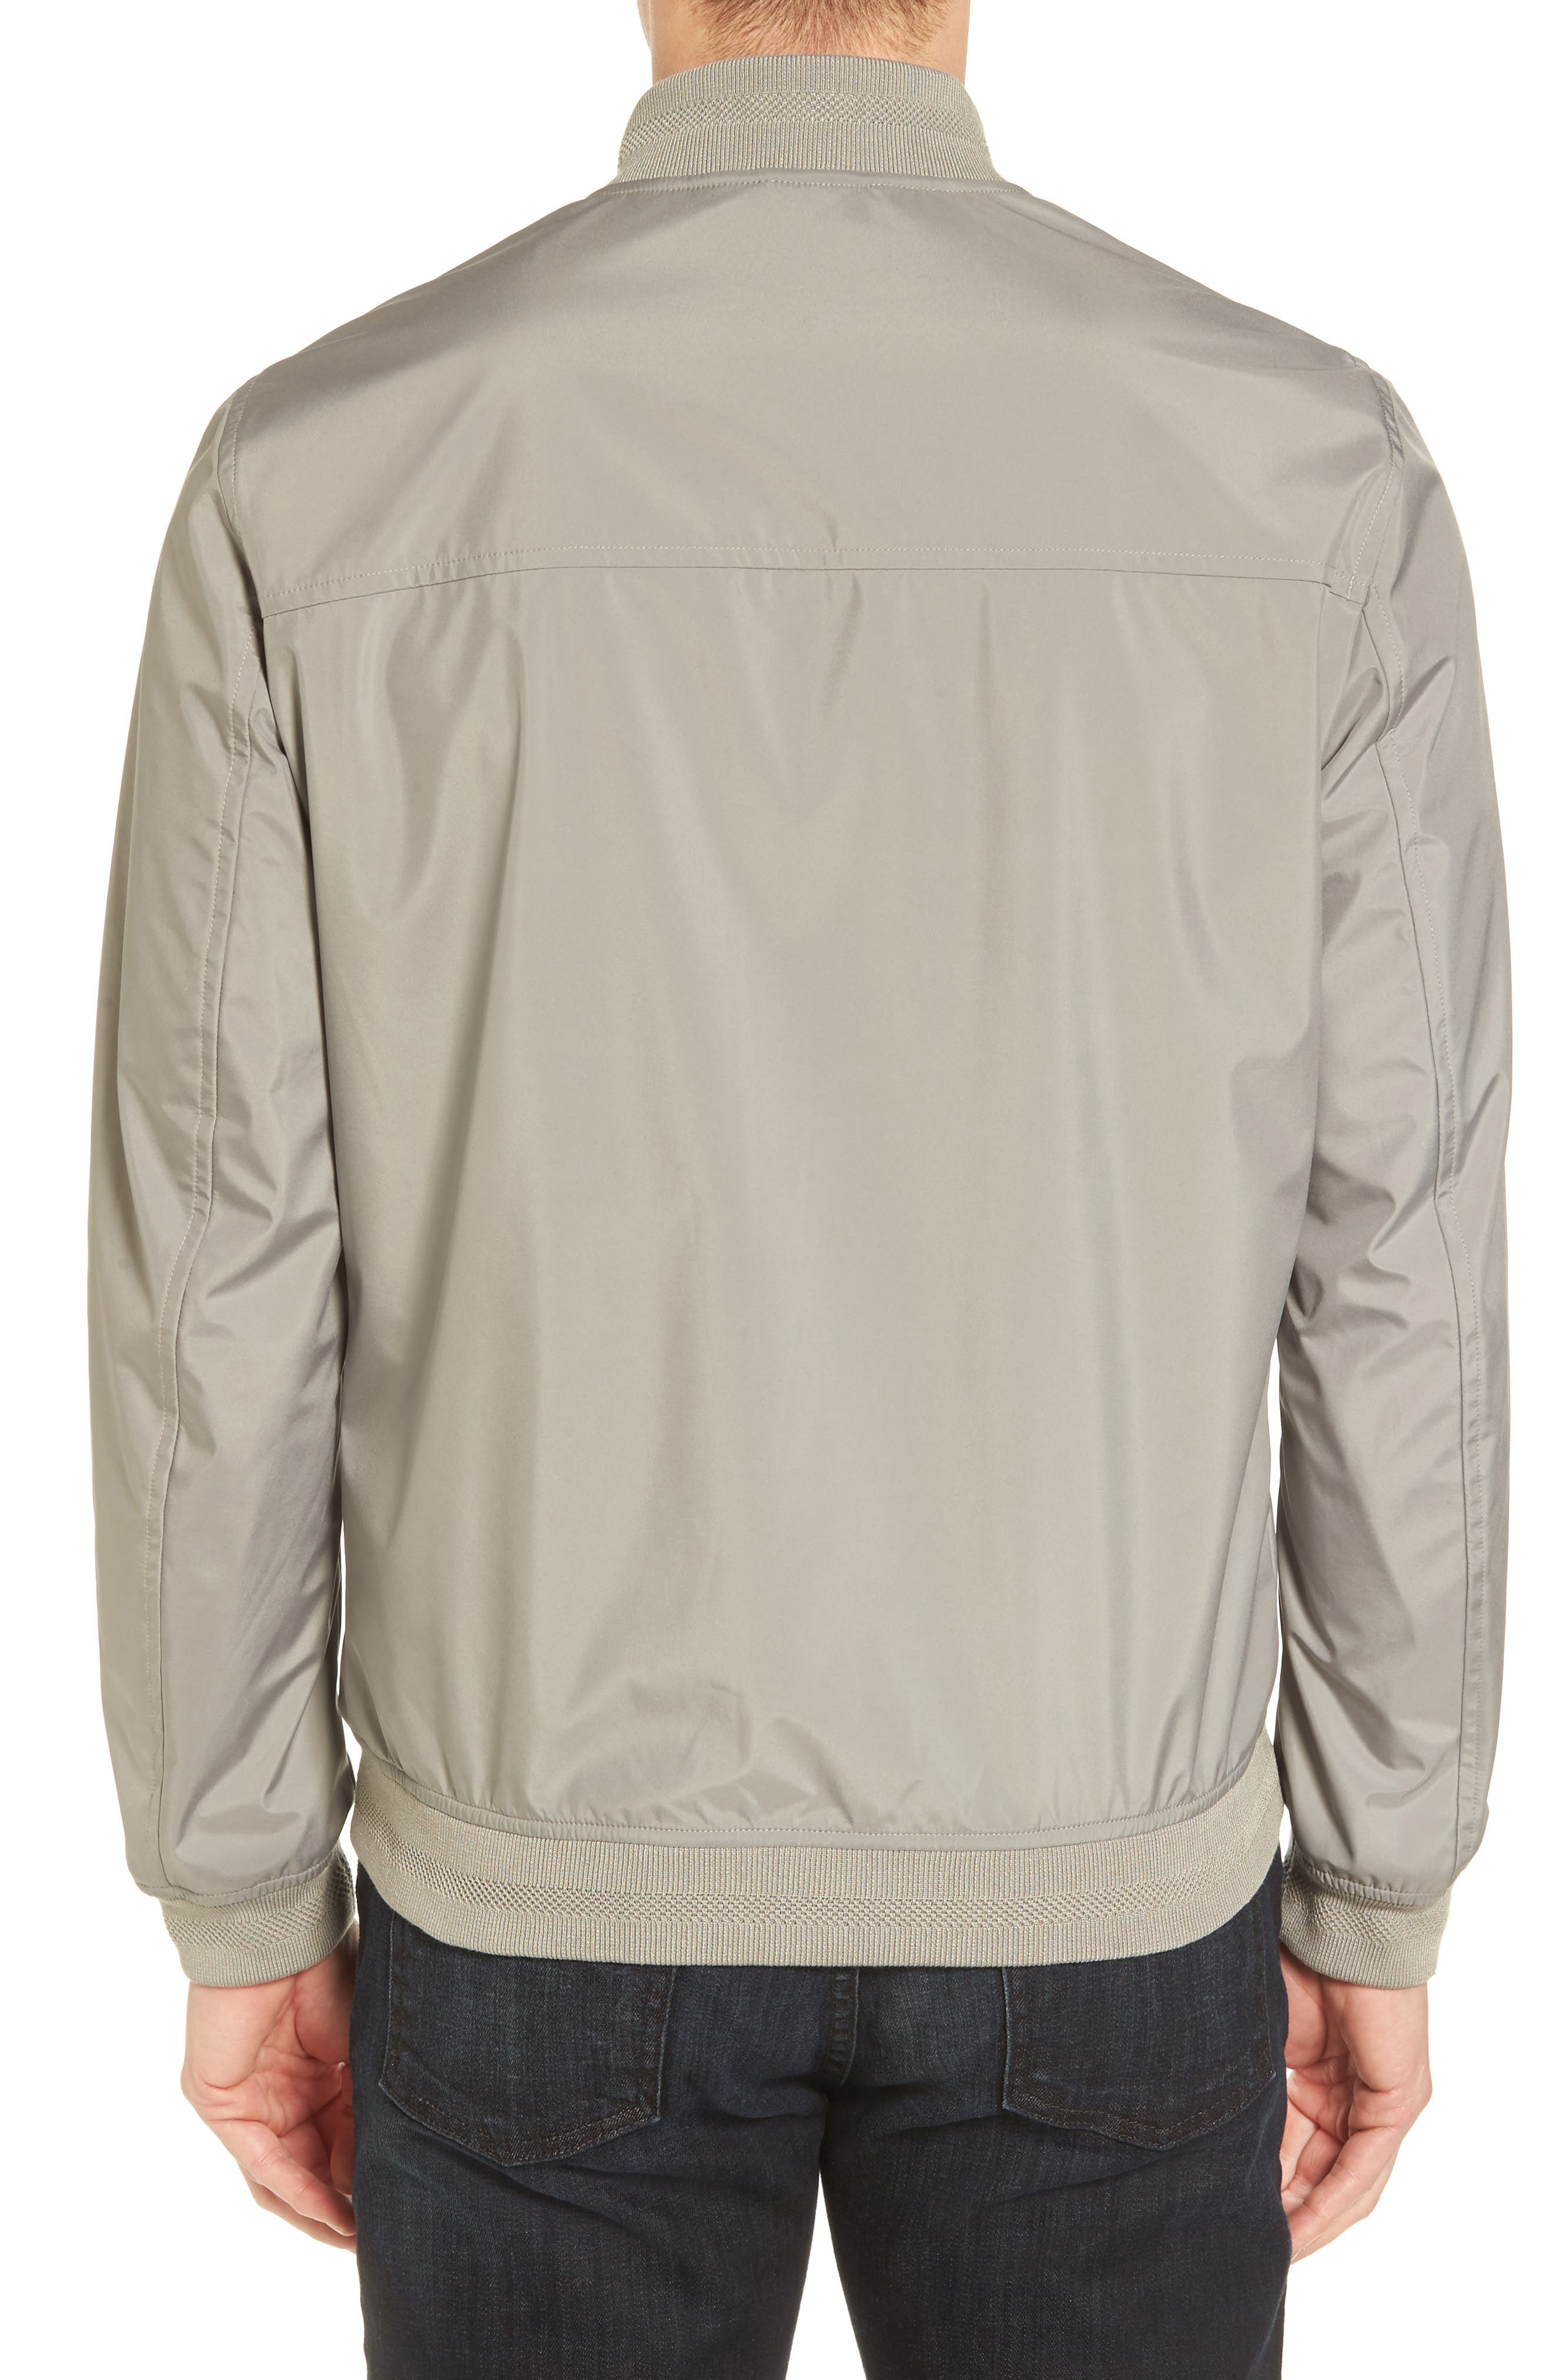 Ohta Bomber Jacket,                             Alternate thumbnail 2, color,                             030